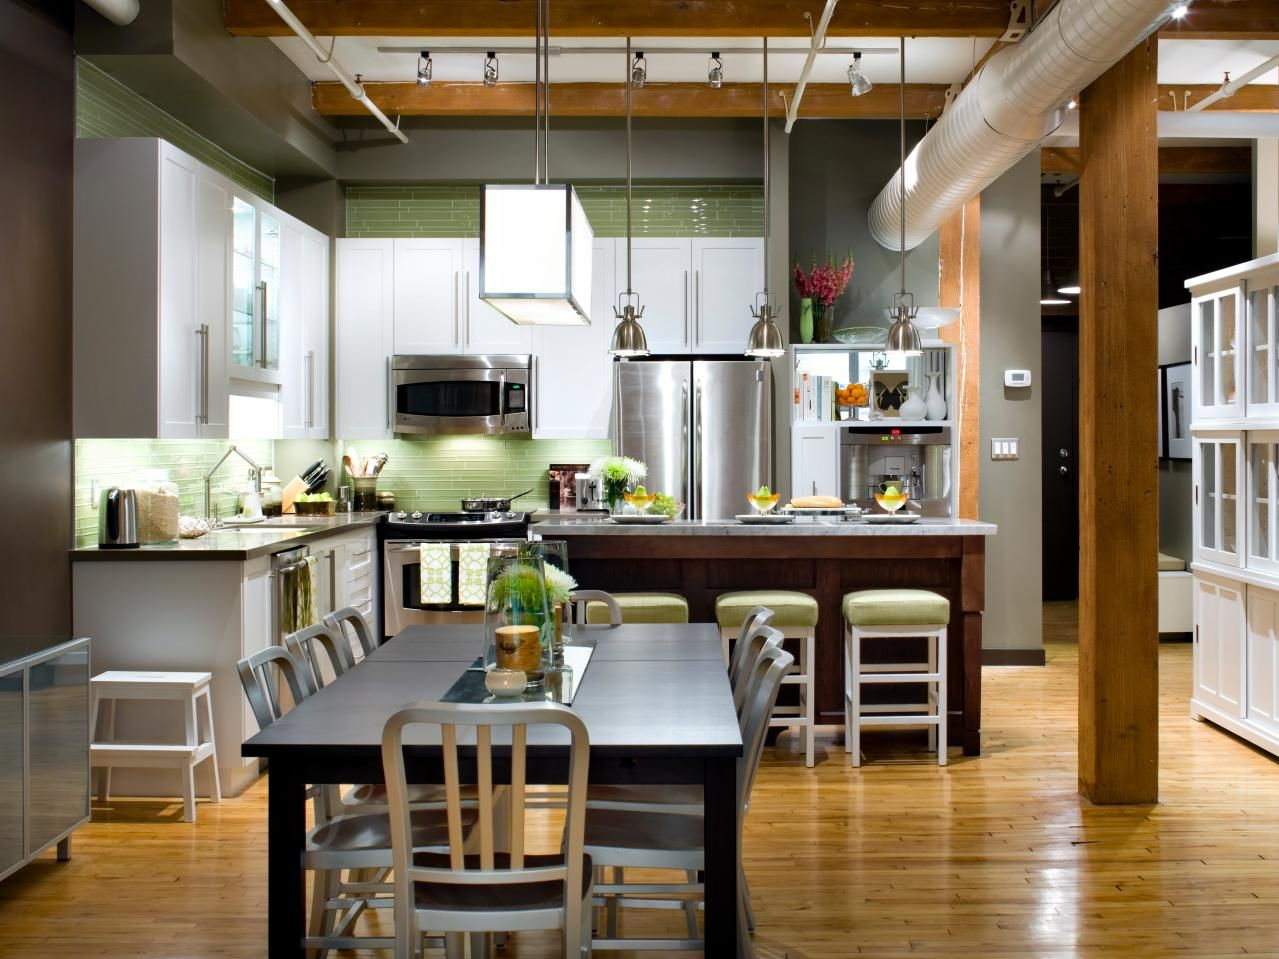 L Shaped Living Room Dining Room Furniture Layout Fair Inviting Kitchen Designscandice Olson  Candice Olson Kitchen Design Inspiration